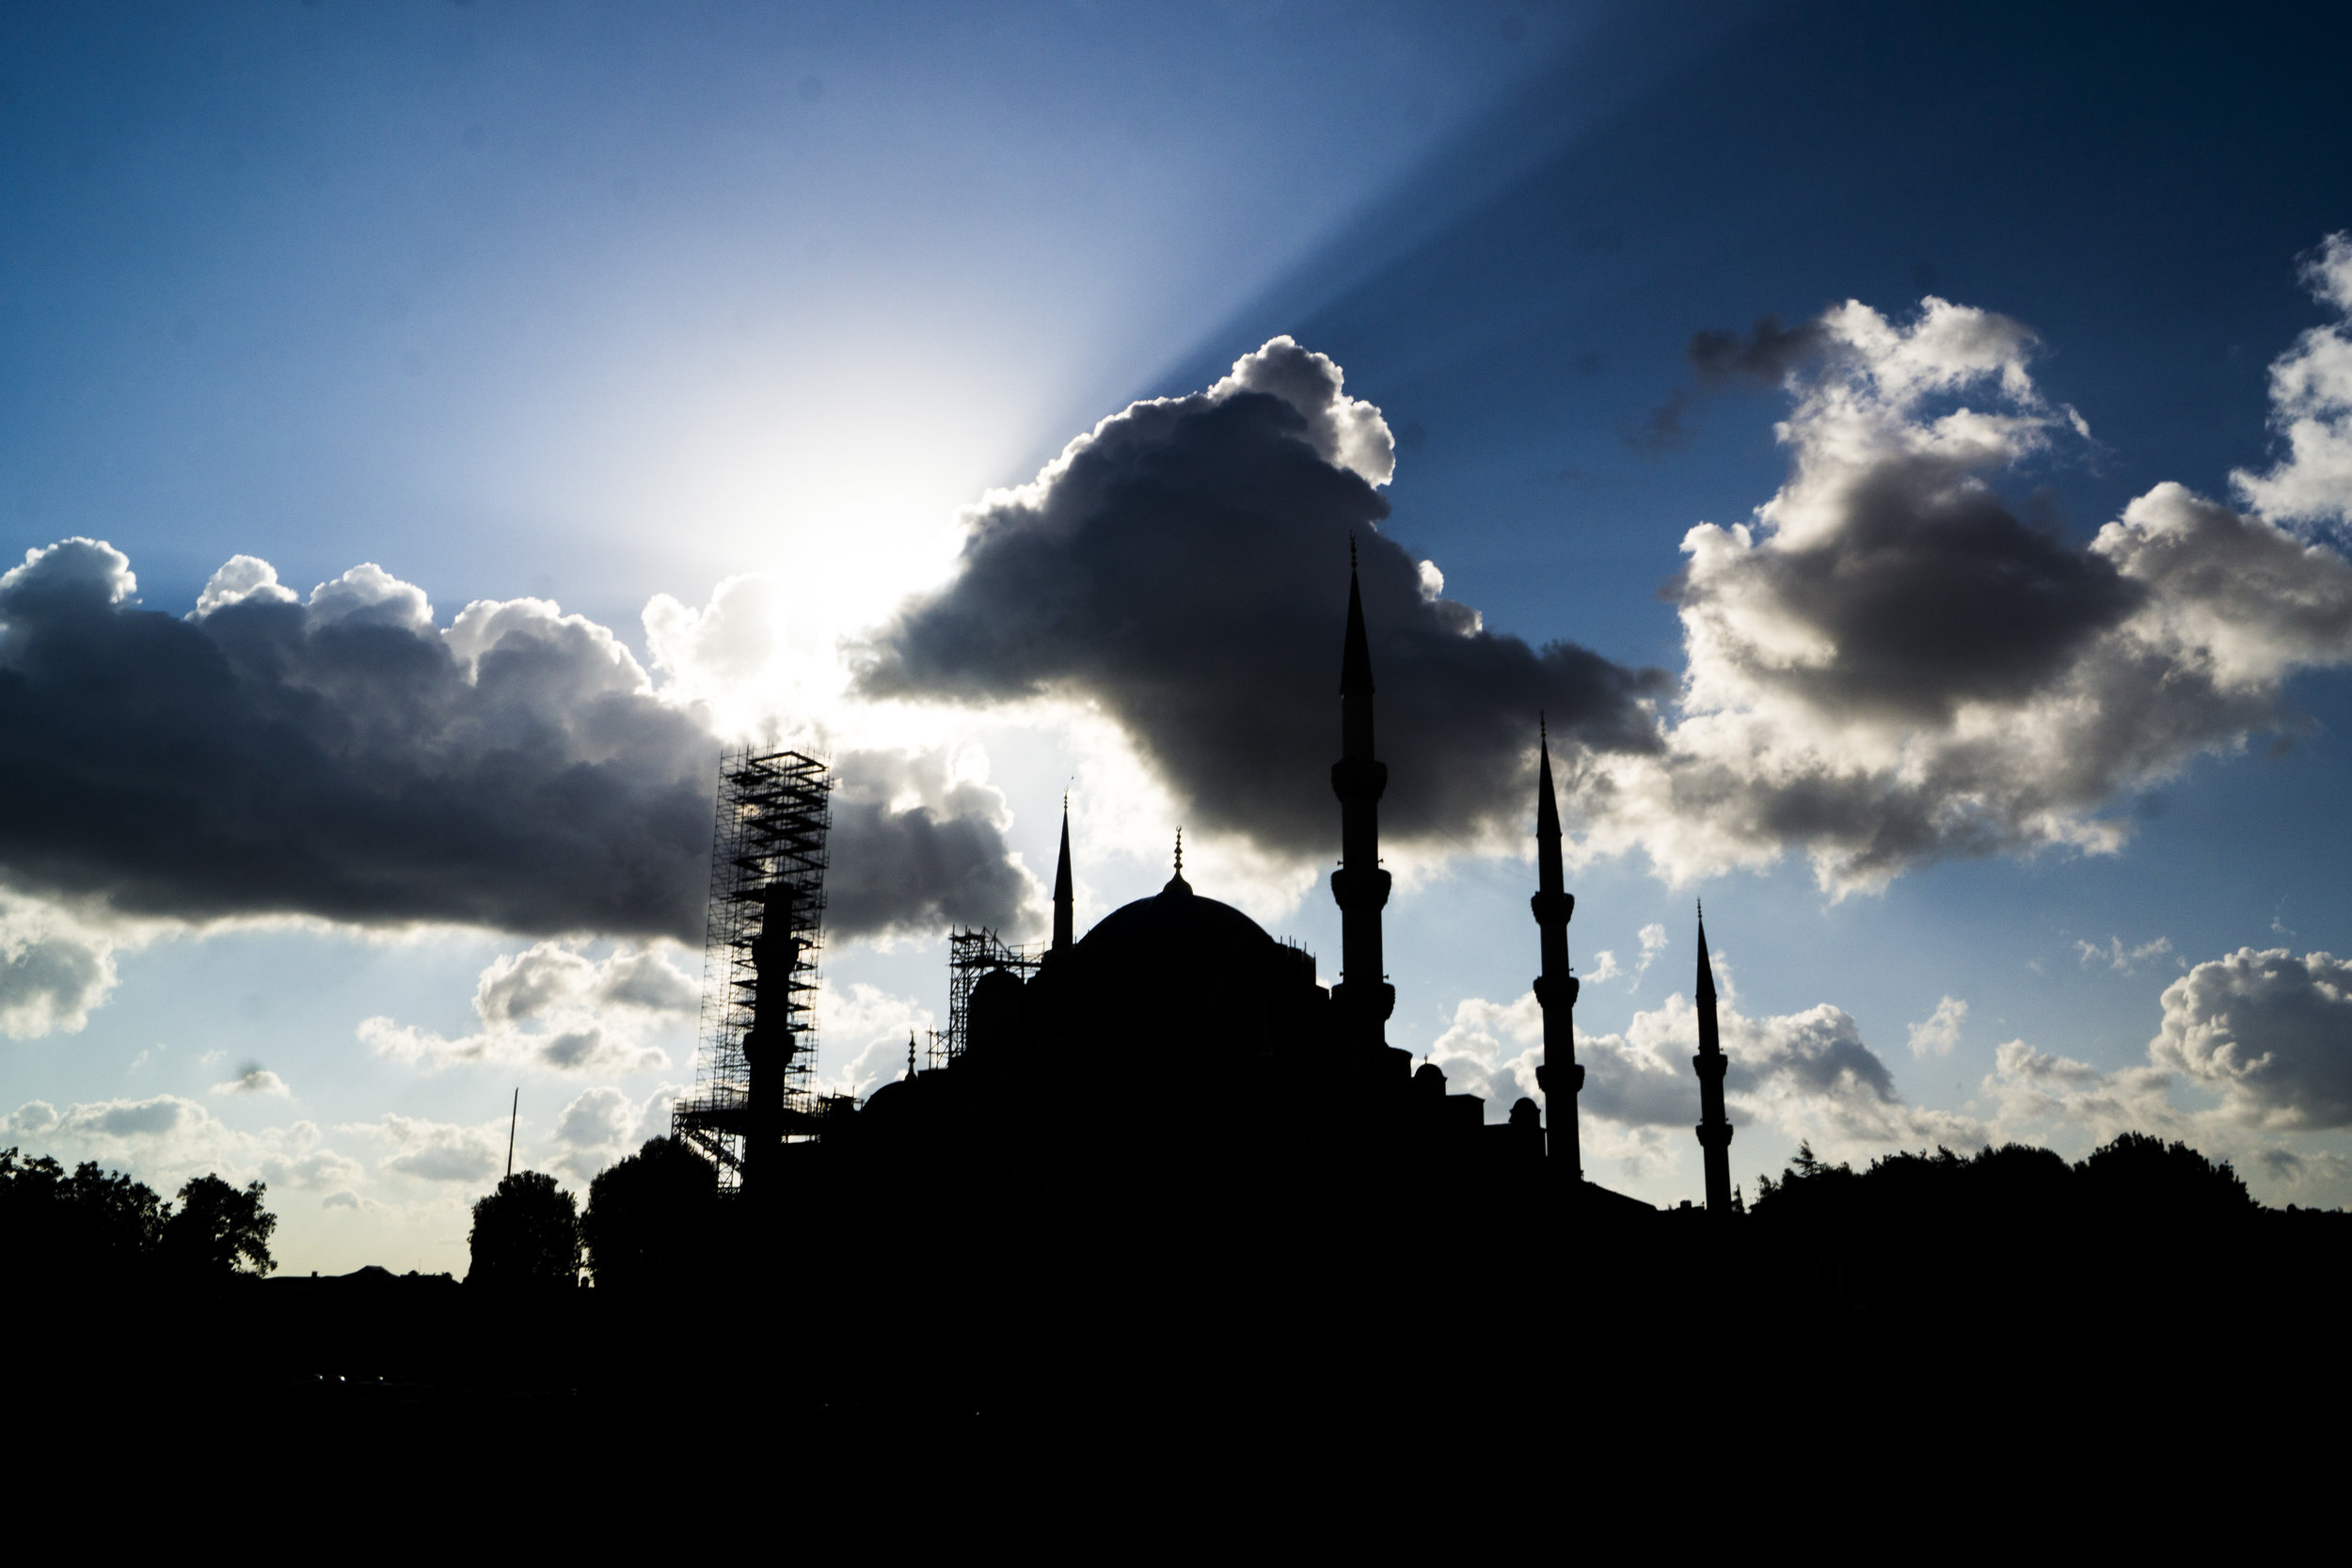 The Blue Mosque casts its striking silhouette.